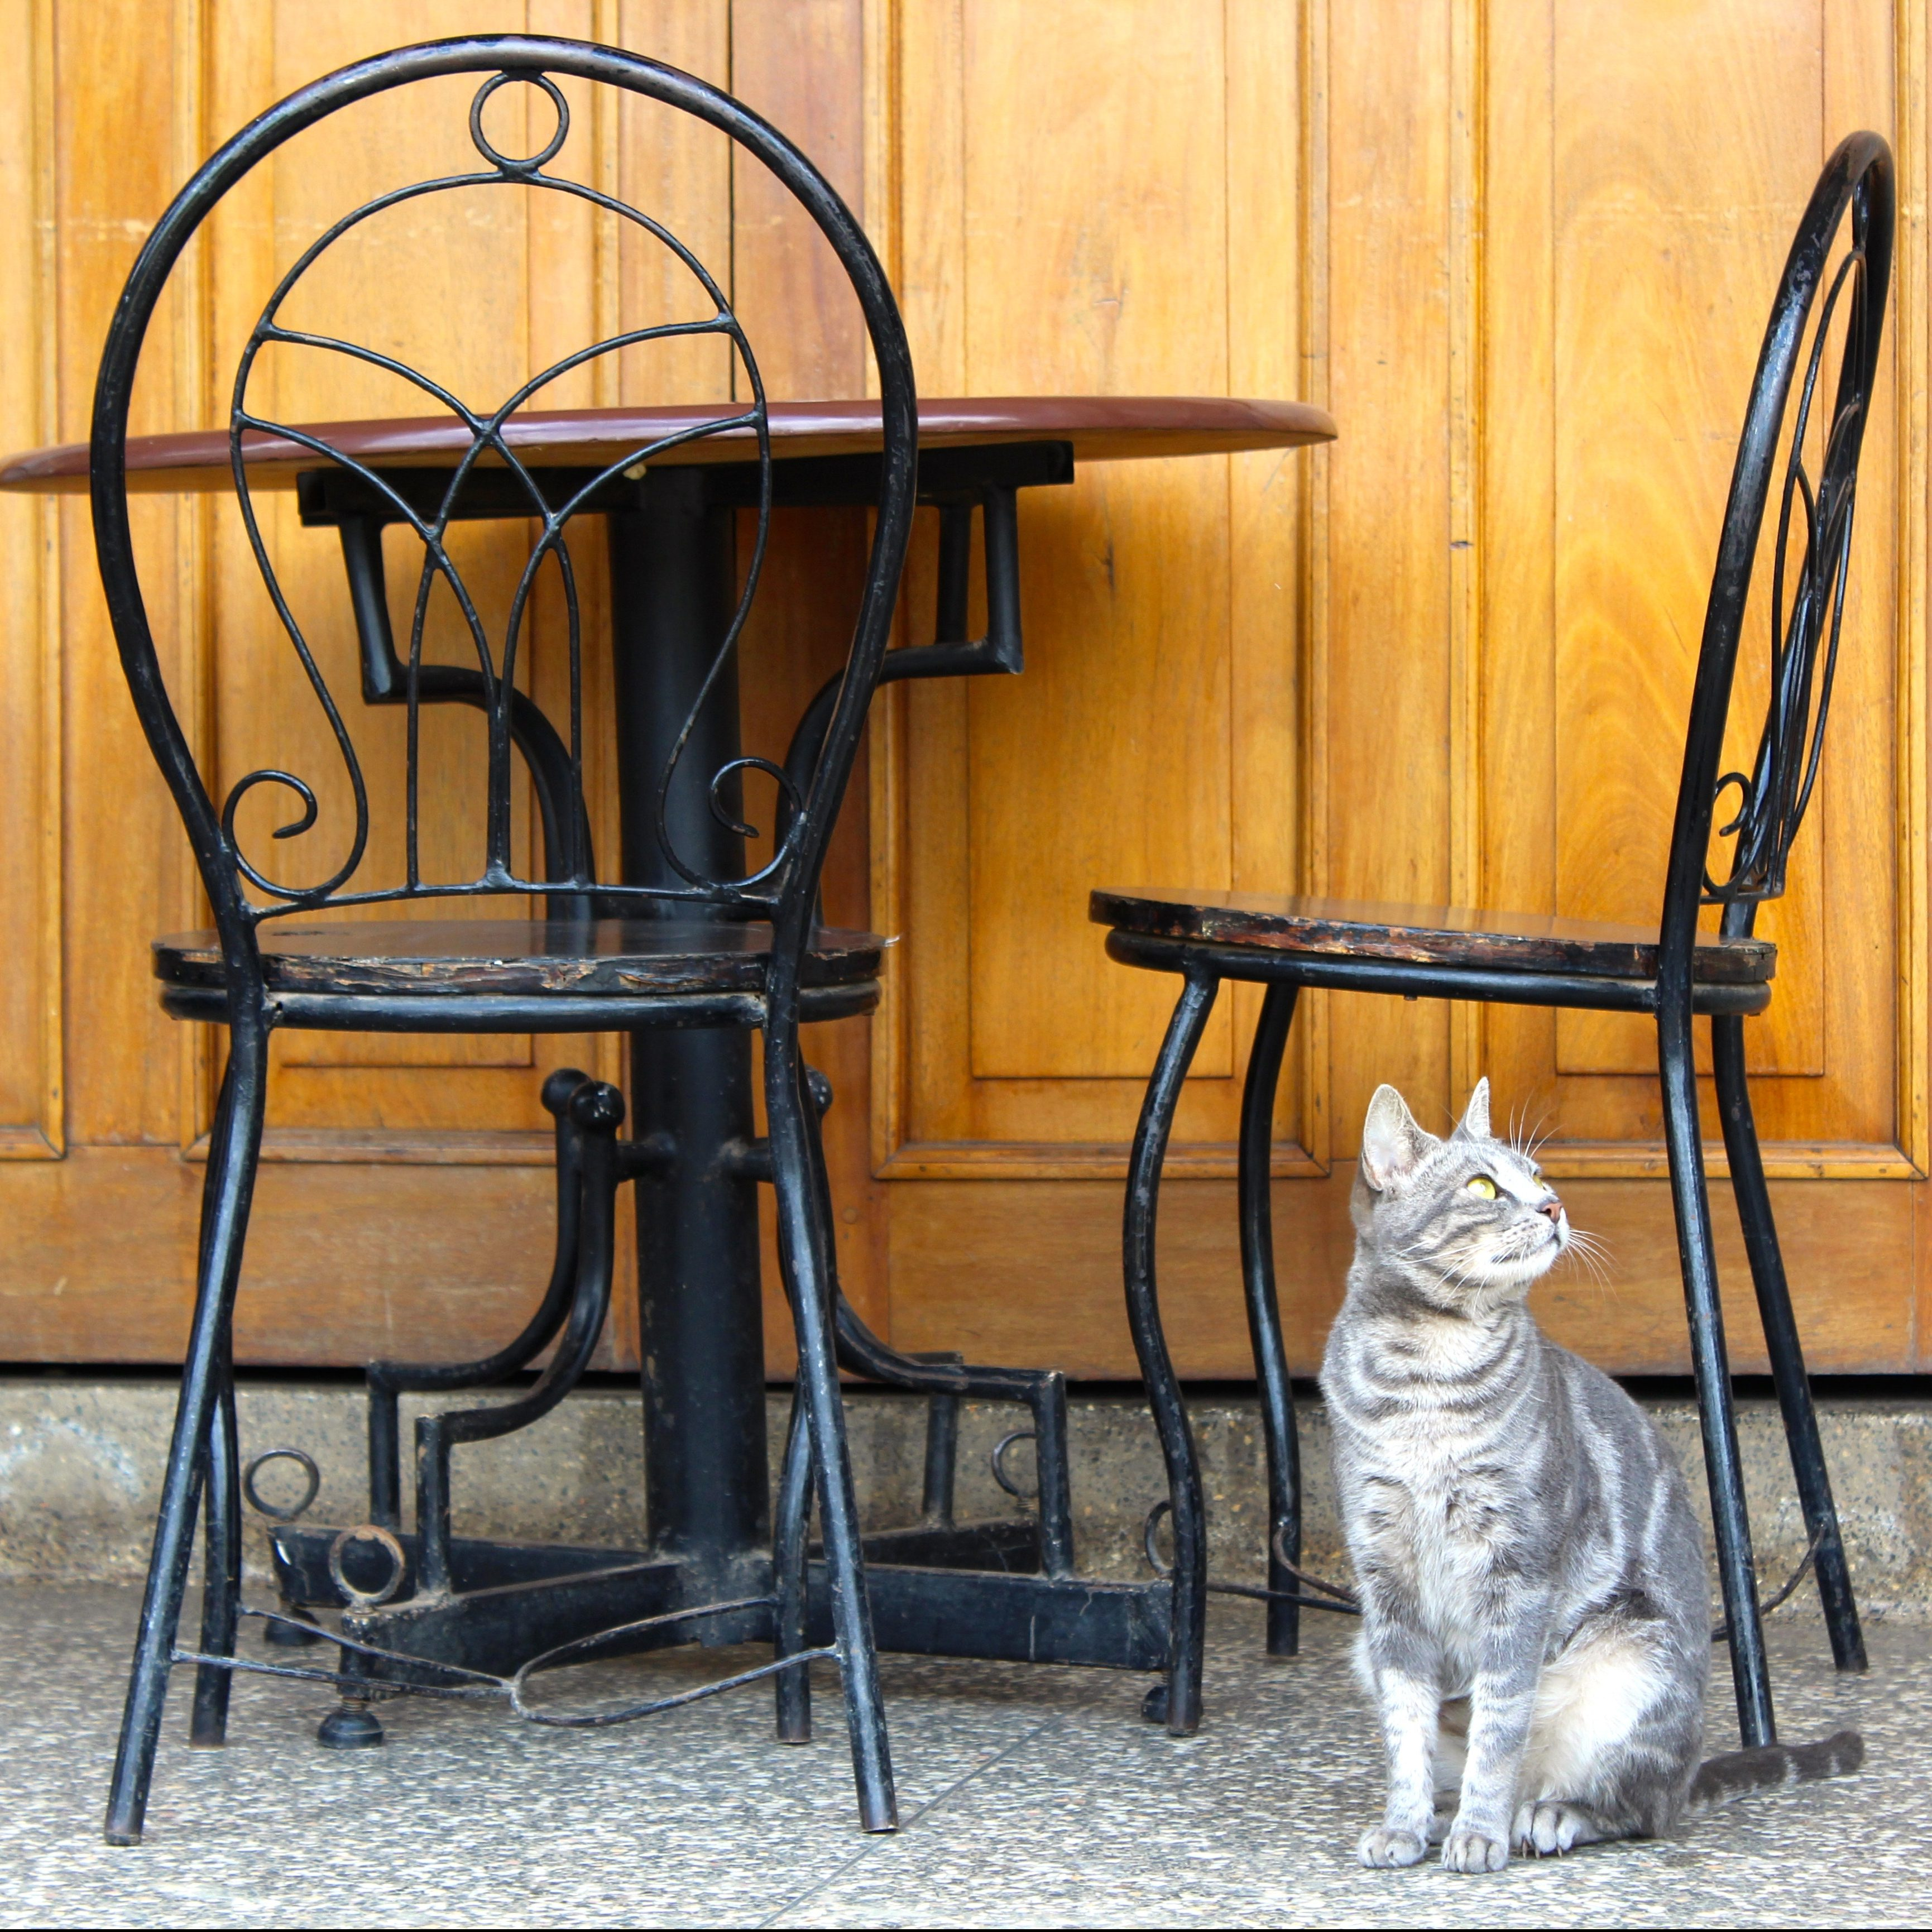 cat sitting under a cafe table